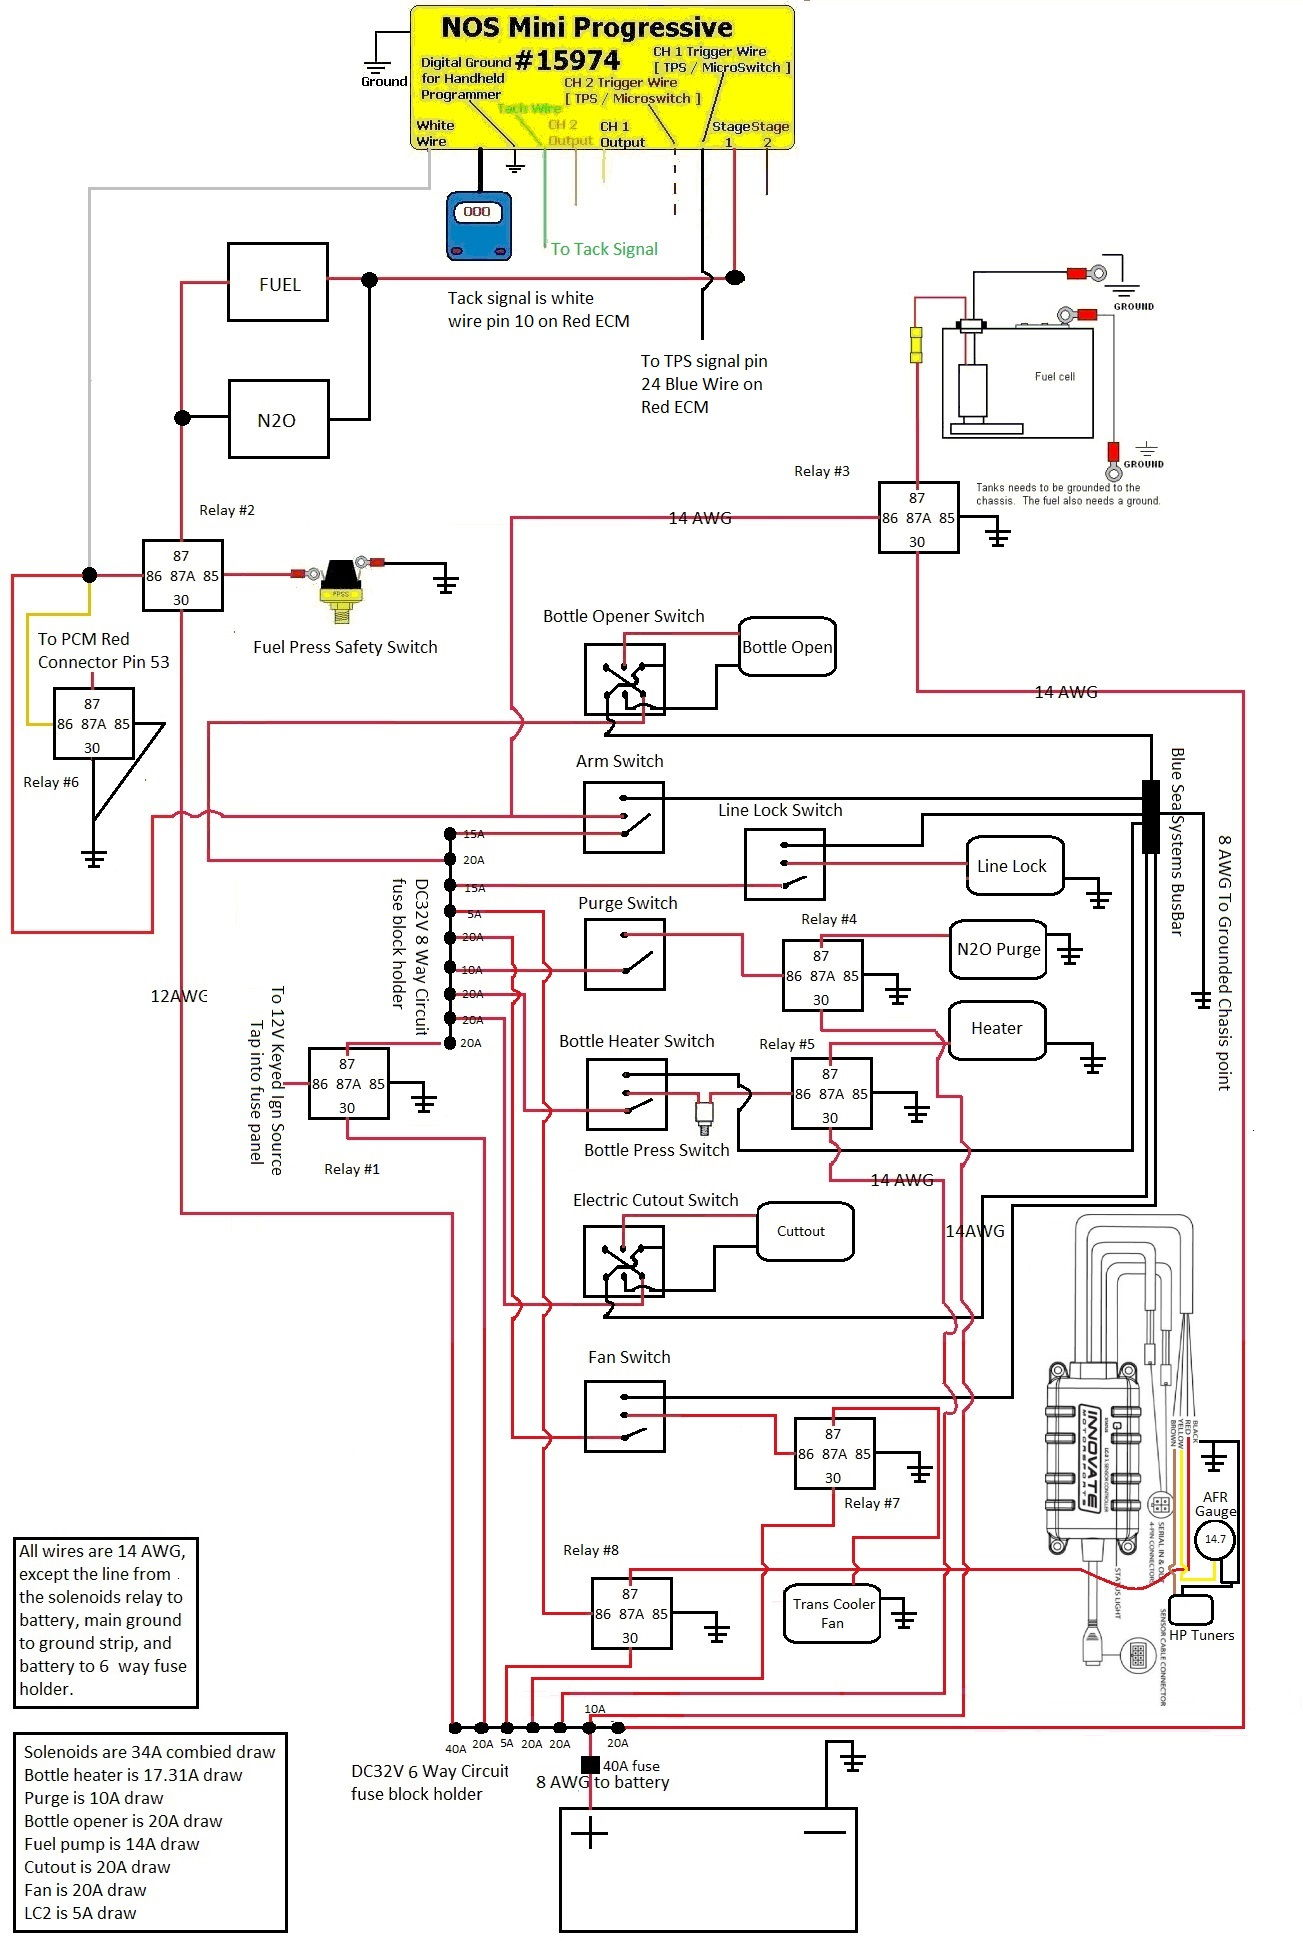 80 n2o_diagram_9_copy_2__4775a2449a09182d6790d82dc1d6d3f64da77e94 nos mini progressive issues? see here ls1tech camaro and nos mini progressive controller wiring diagram at reclaimingppi.co